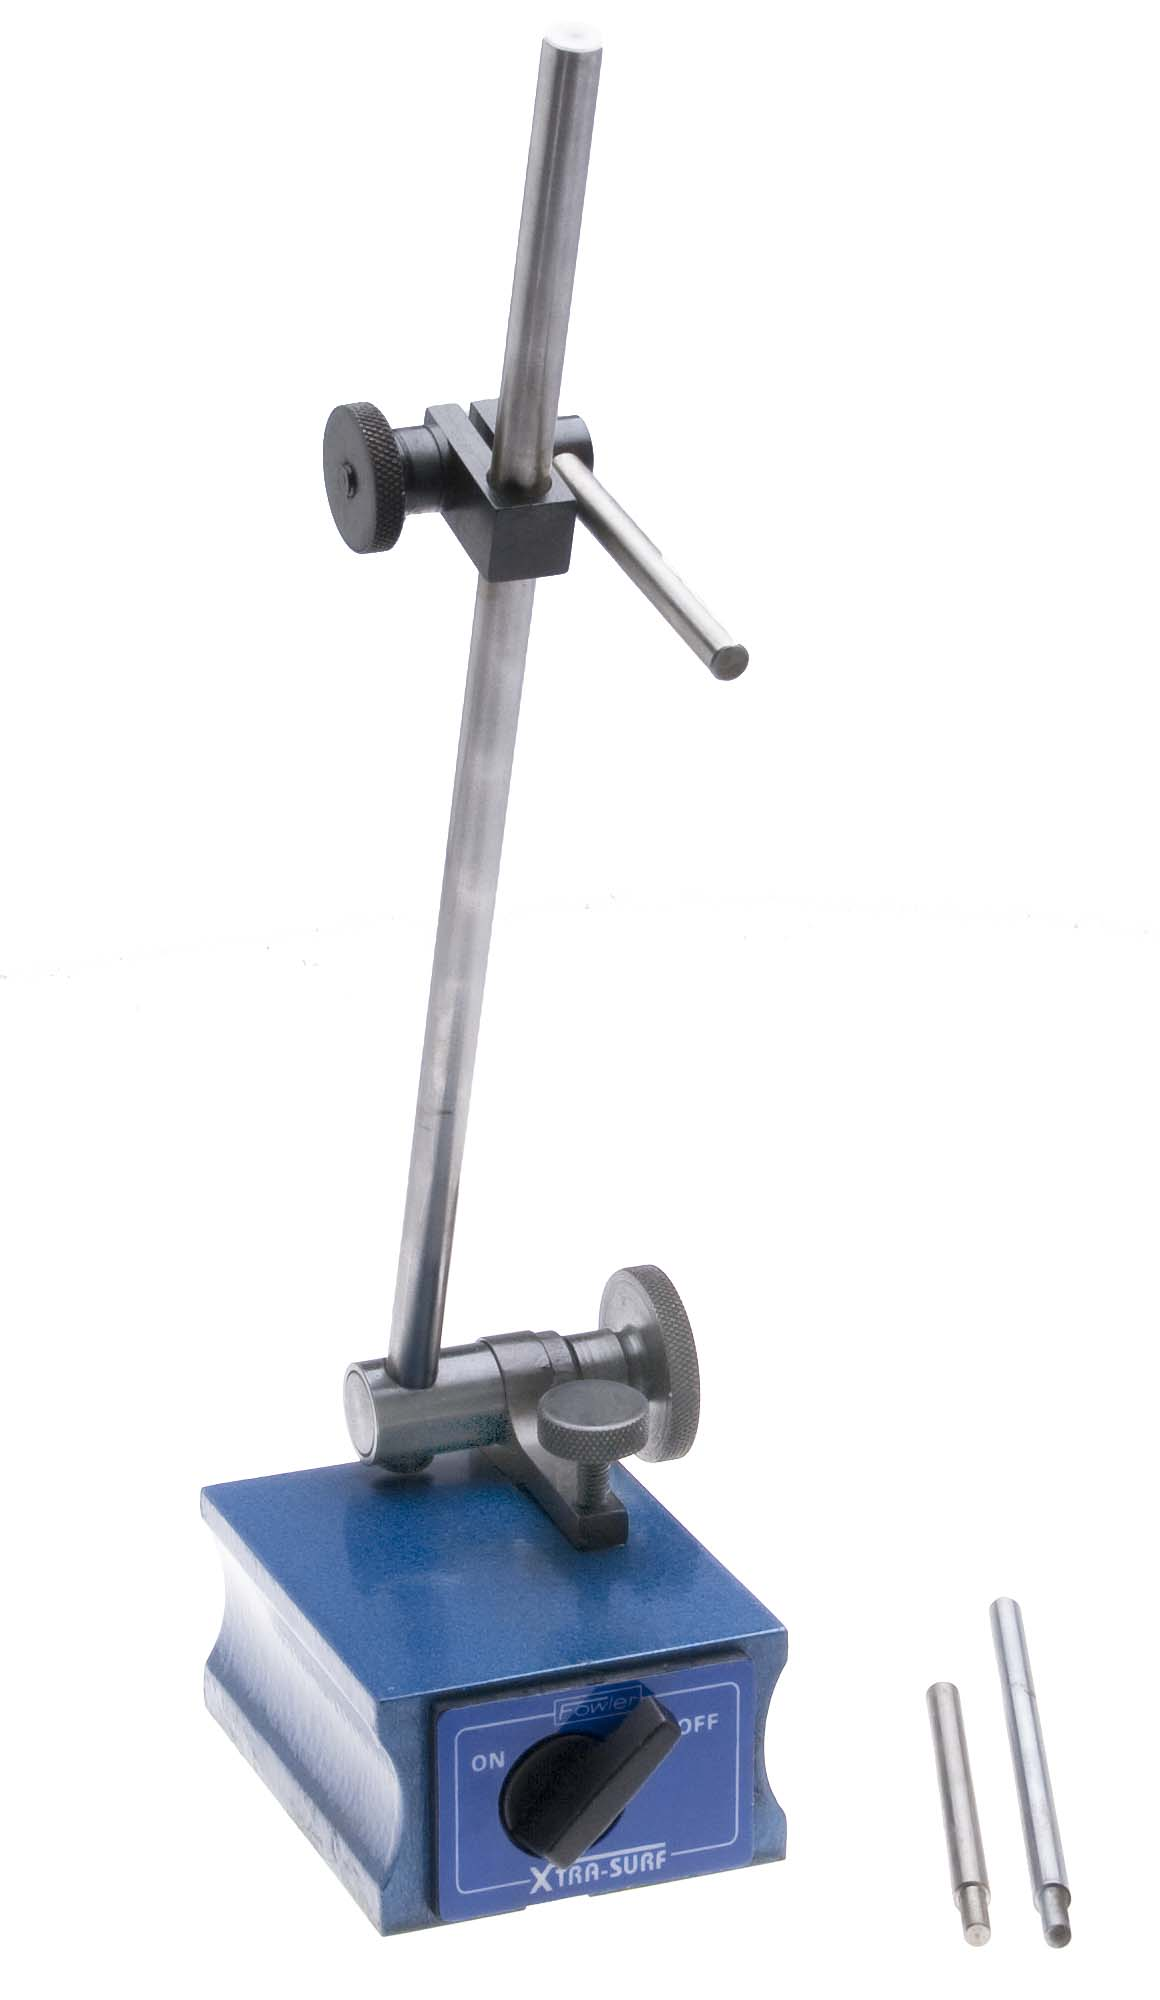 Fowler 52-155-743 Magnetic Surface Gage